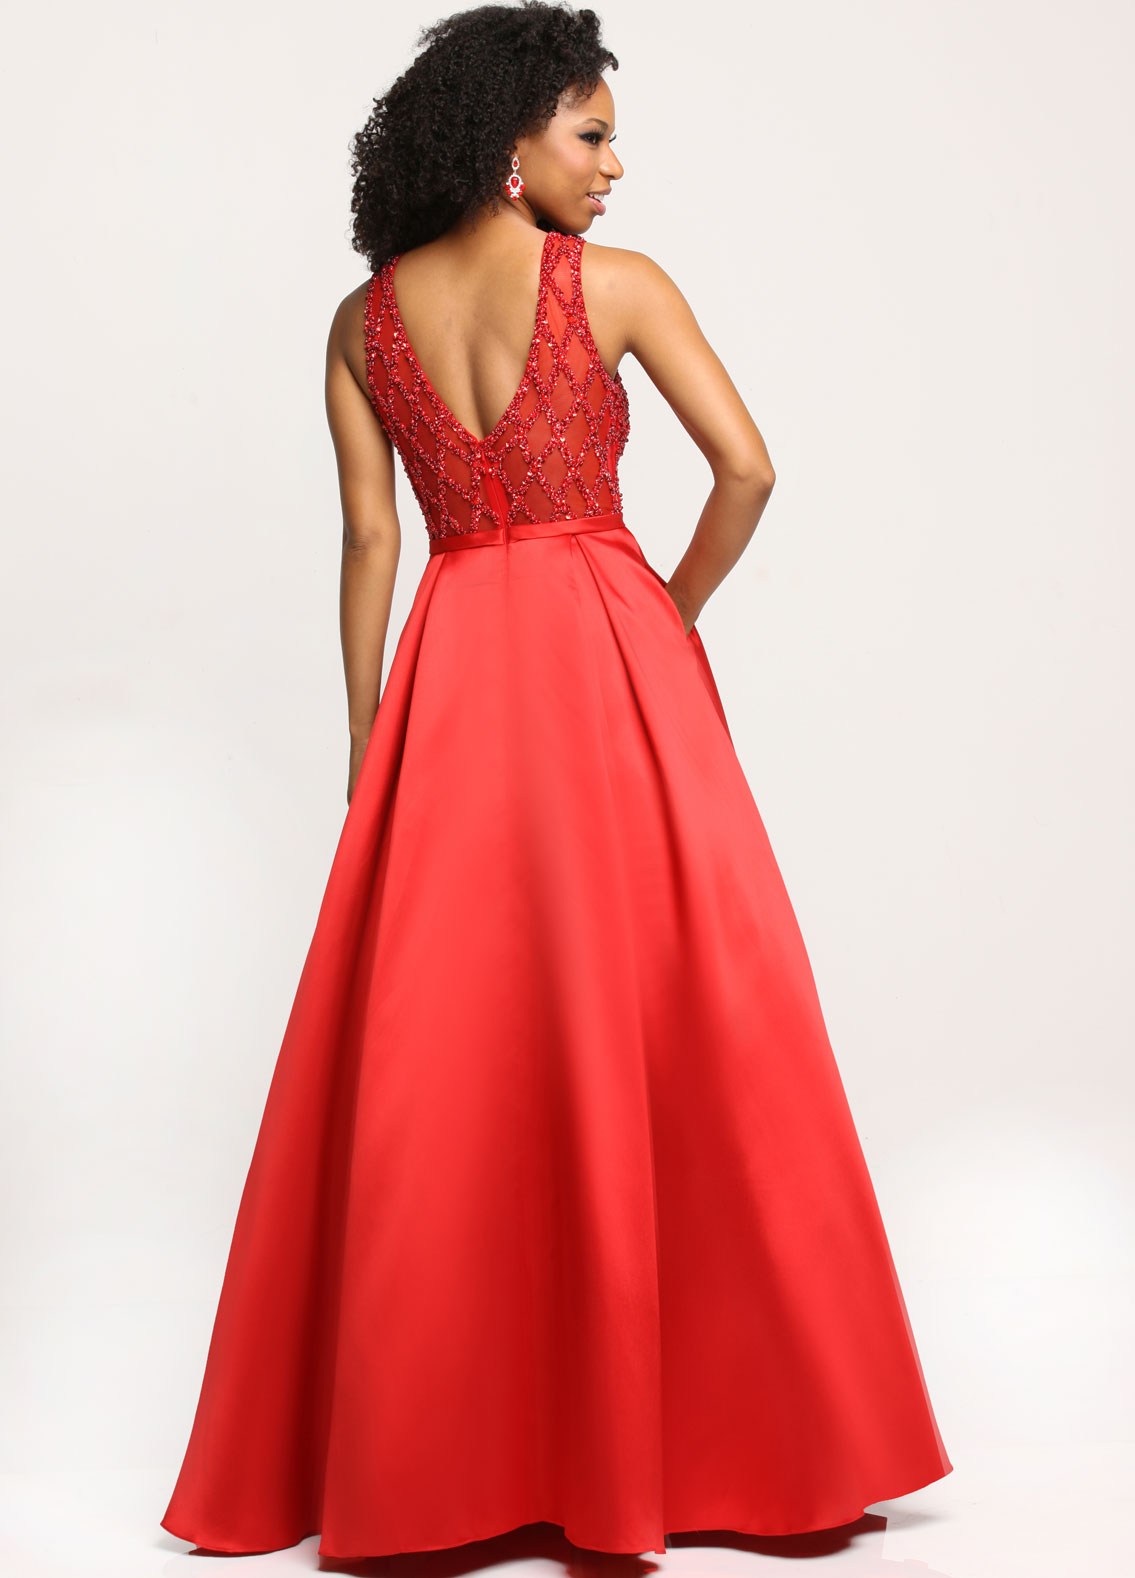 Image showing back view of style #71702